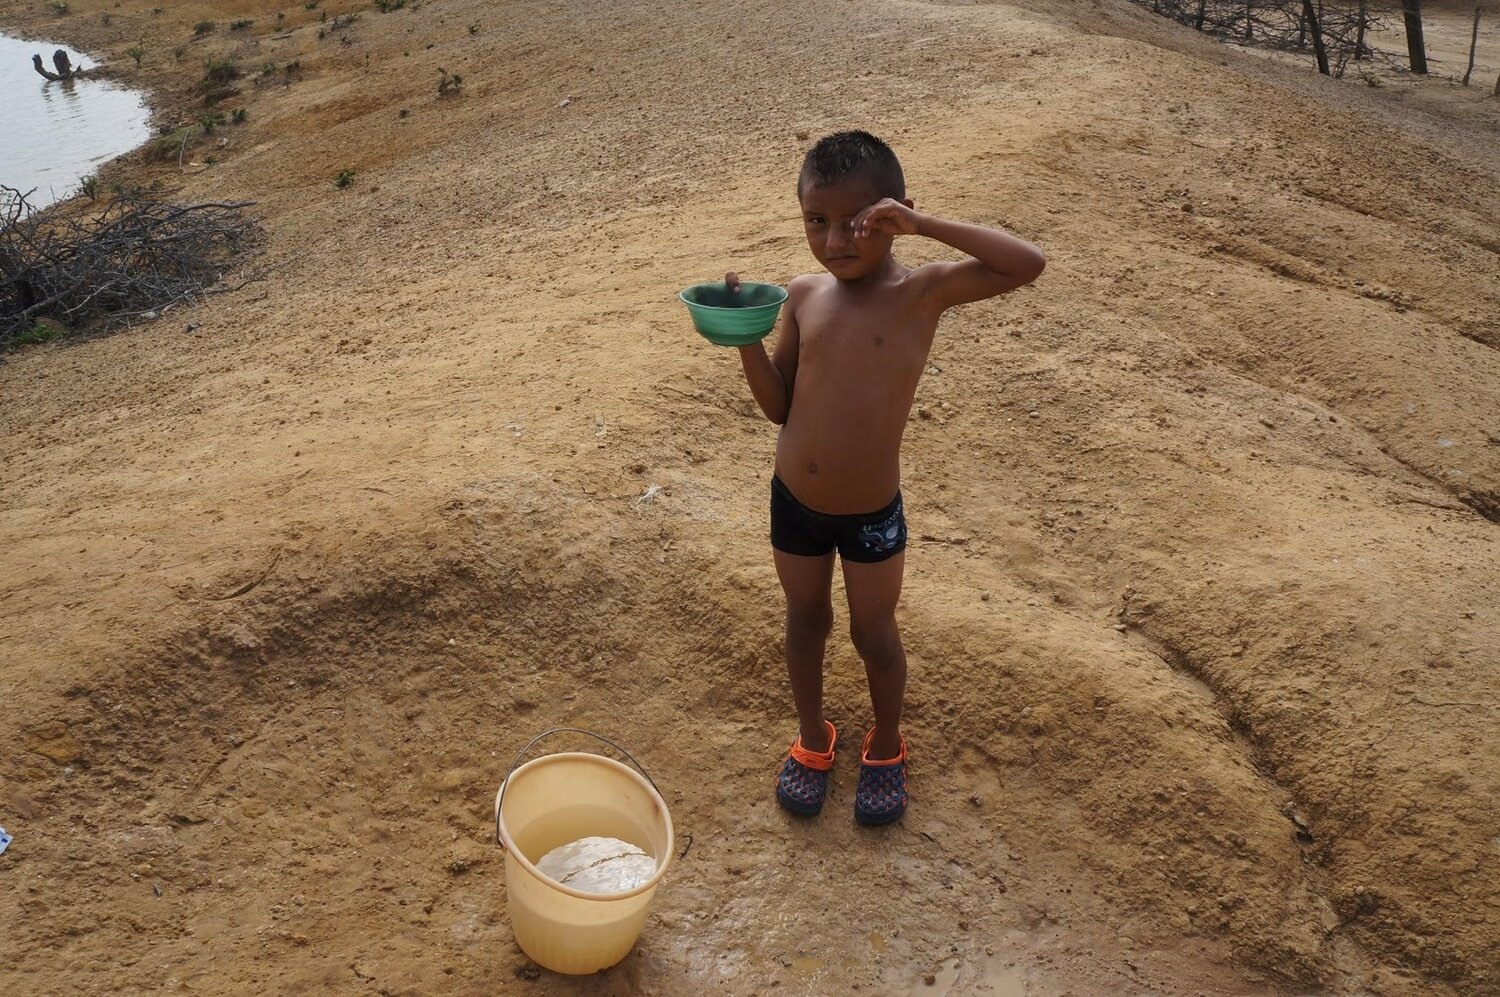 A Wayuu child who walked several kilometers to reach the water of a Jaguey. La Guajira, Colomba. Photo by V.Circe.